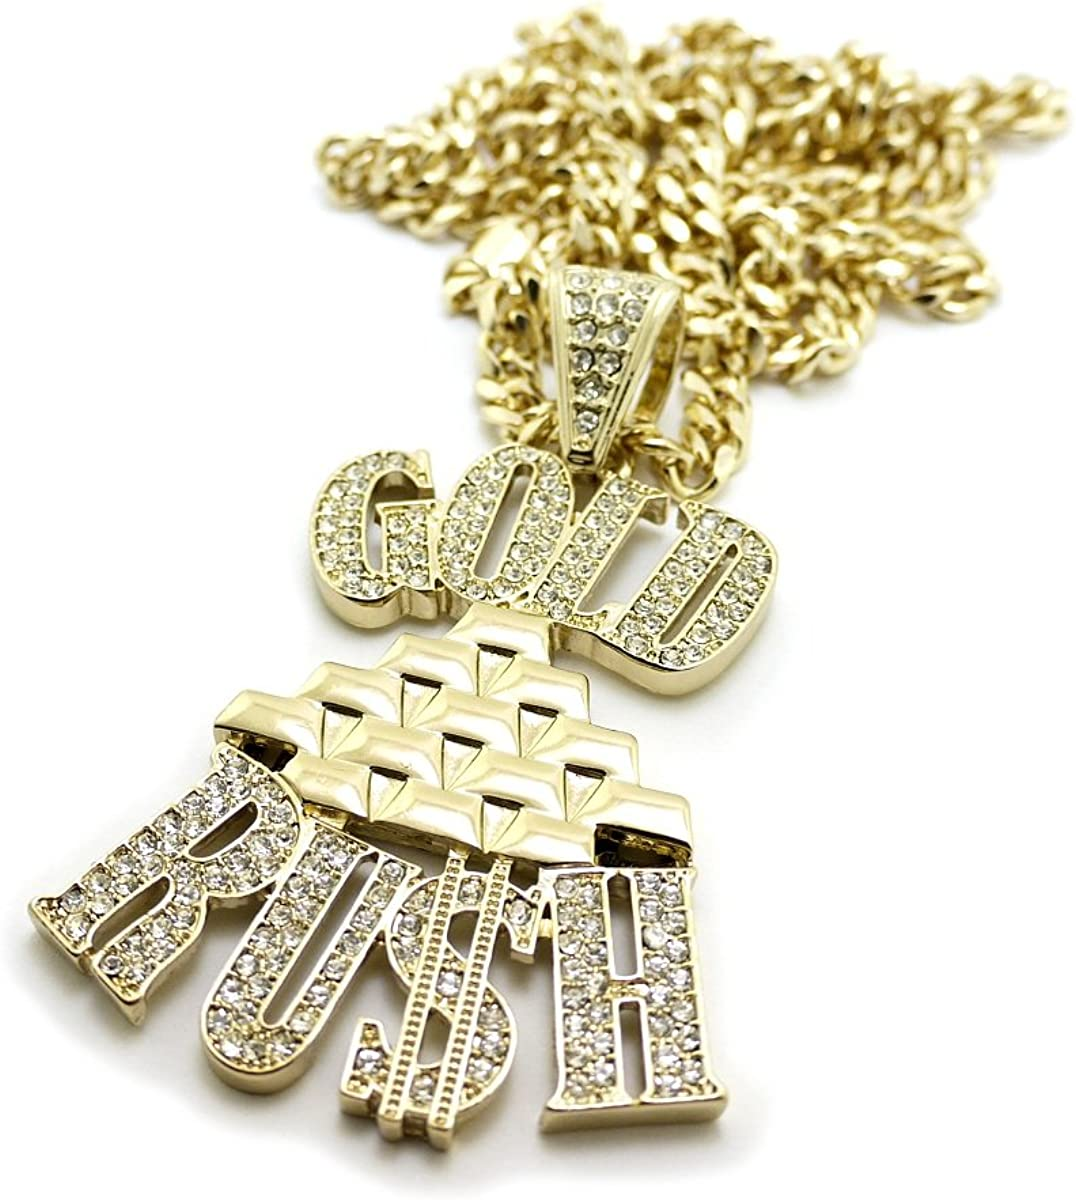 NYFASHION101 Assorted Pendant with 6mm 36 Miami Cuban Chain Necklace